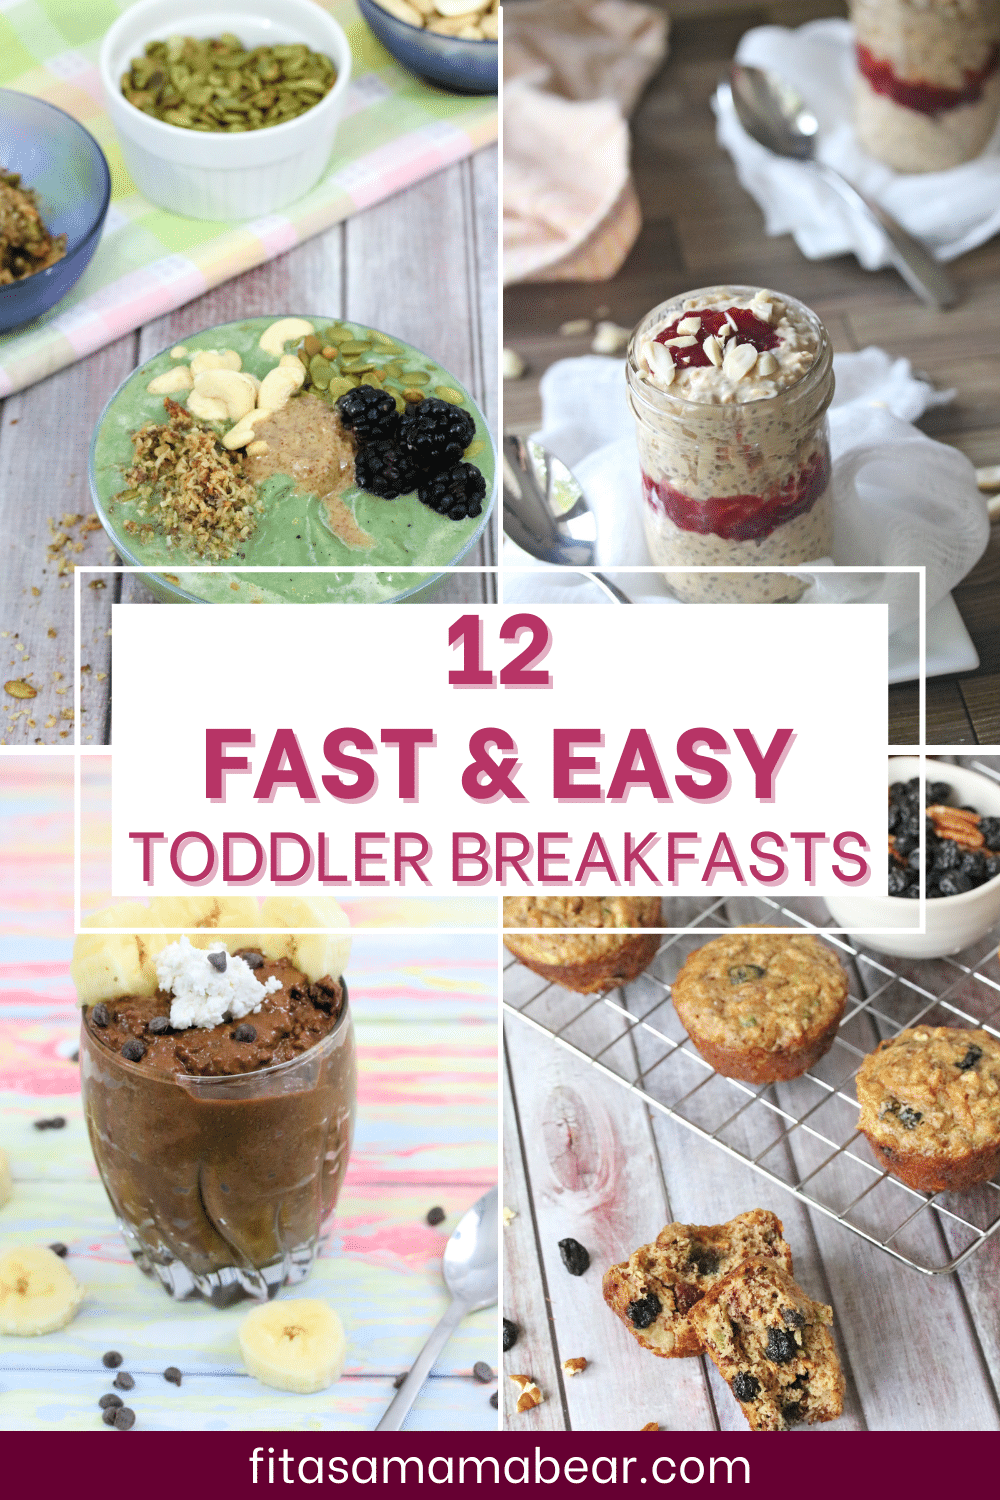 Pinterst image with text: 4 images of breakfast ideas for toddlers